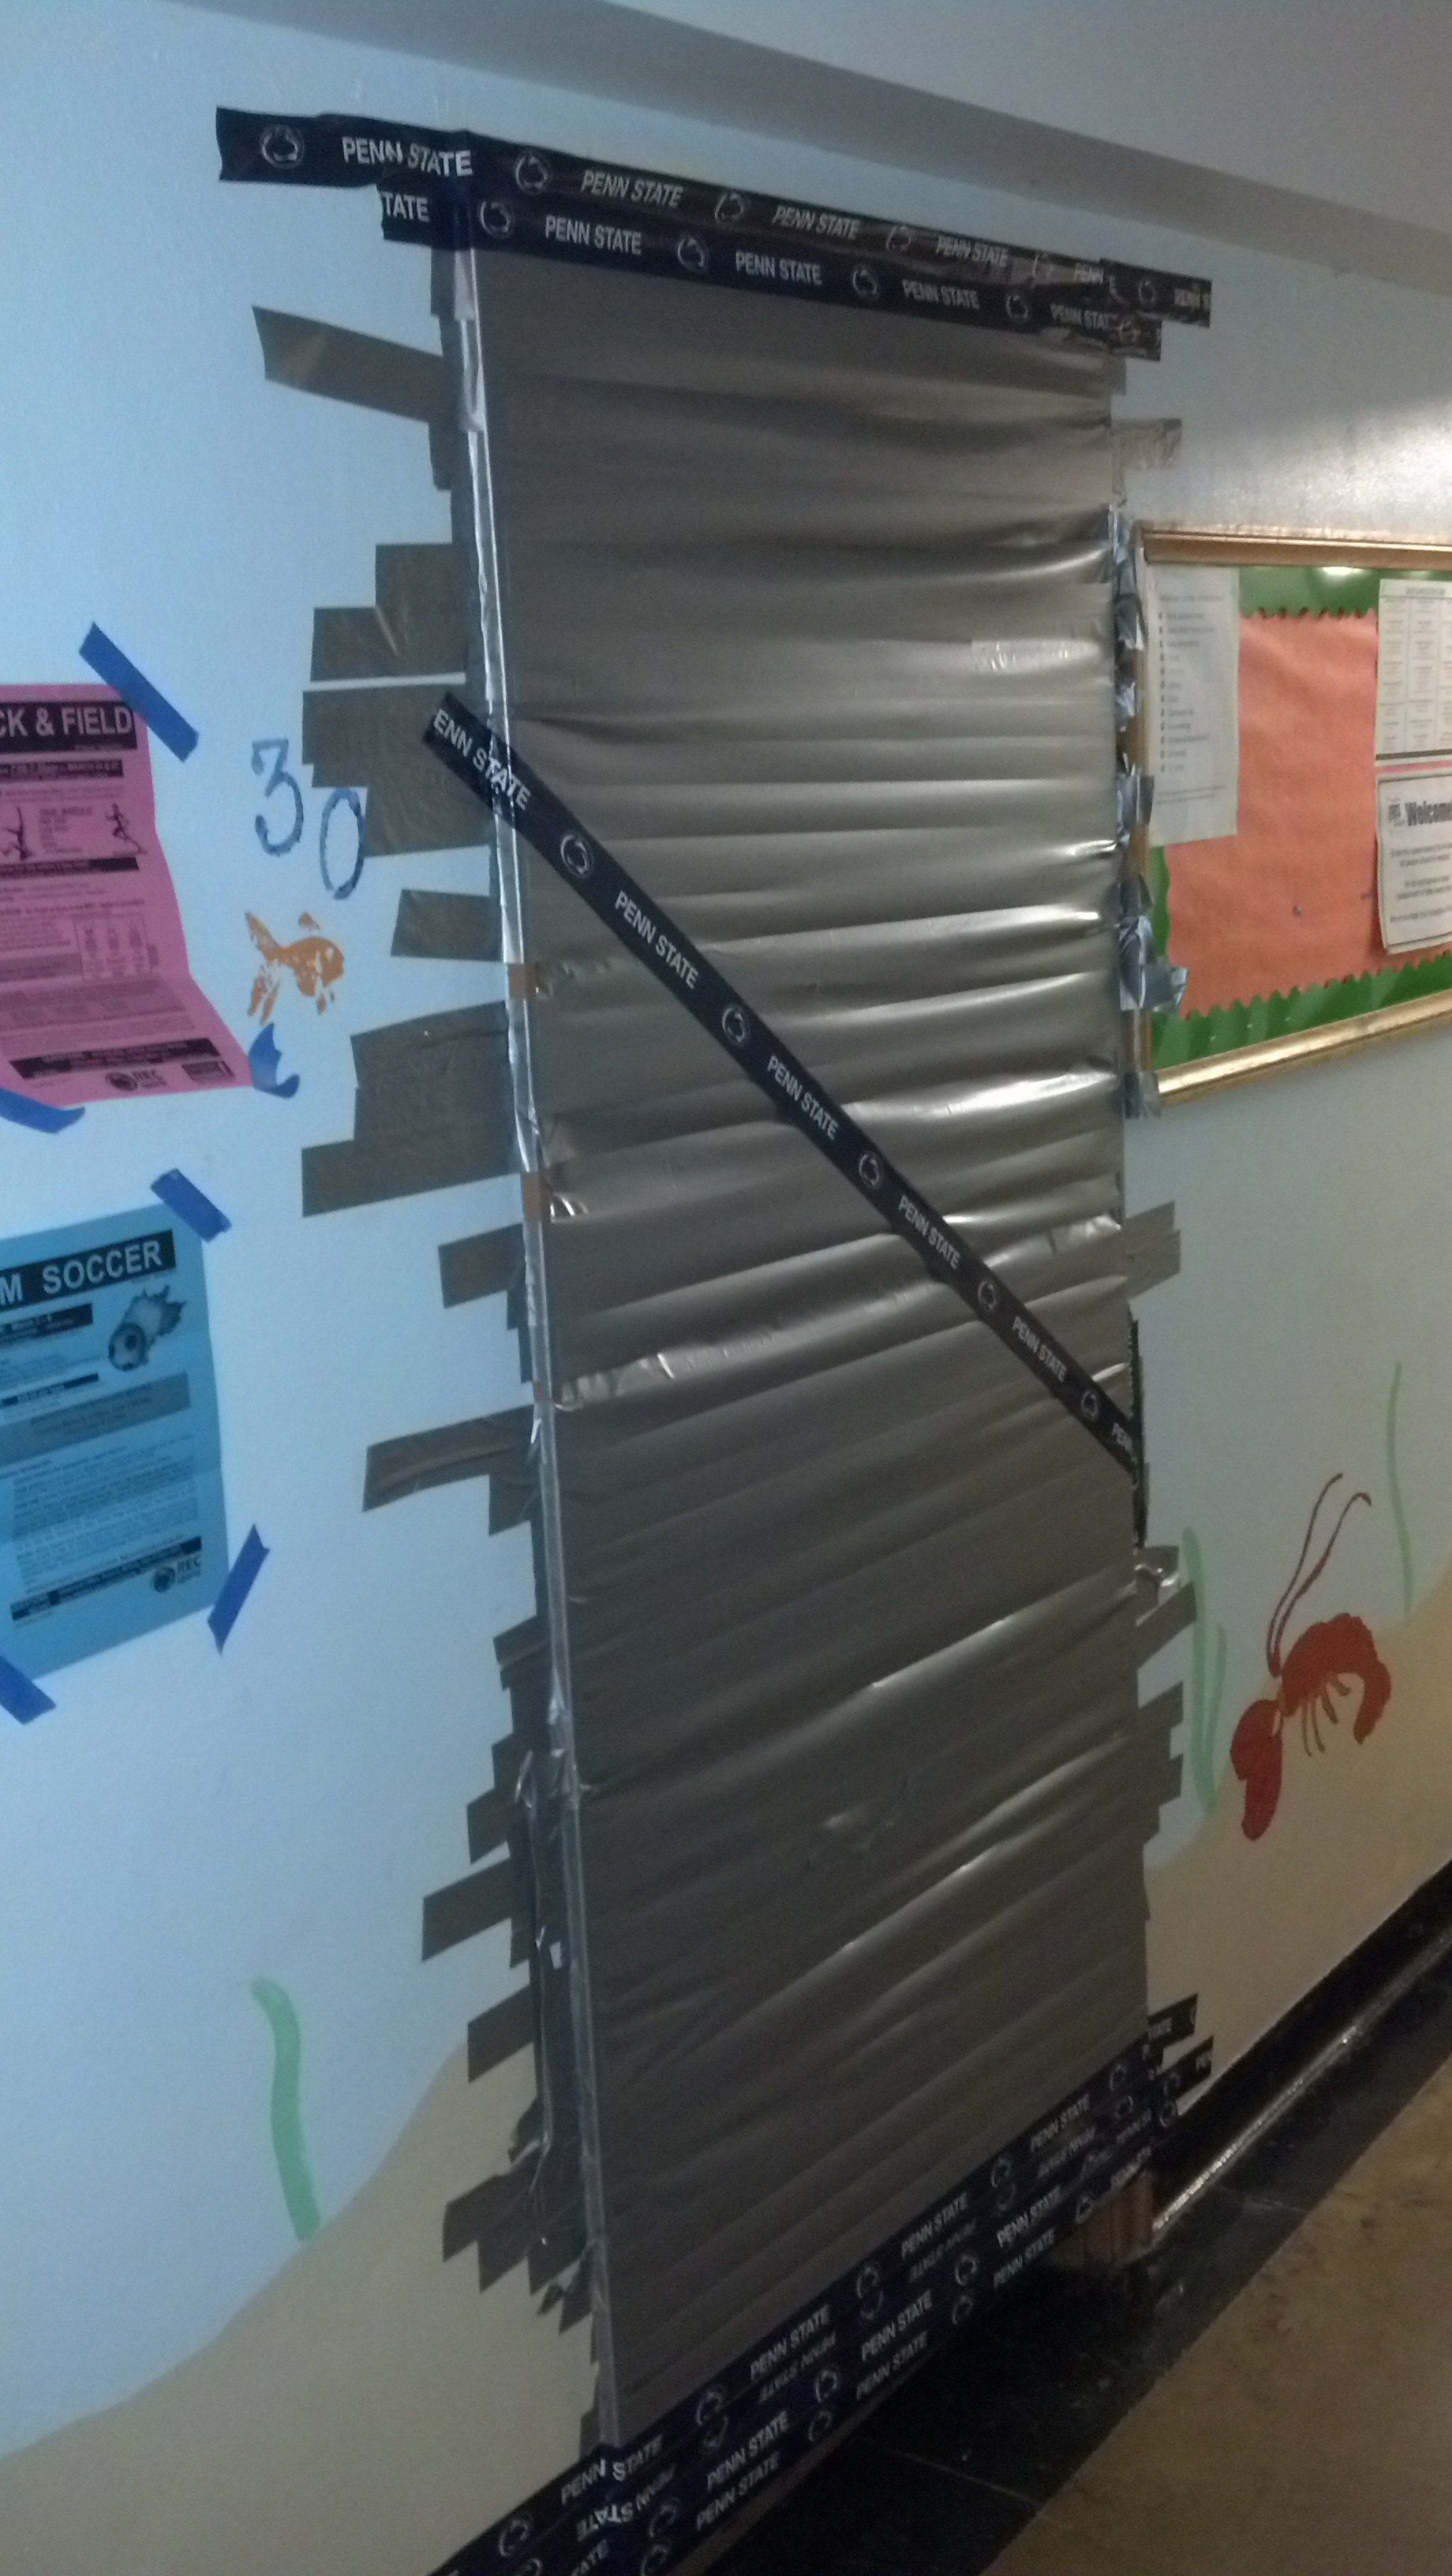 Somebody Duct Taped My Ras Door Shut Last Night Funny Pictures Duct Tape Duct